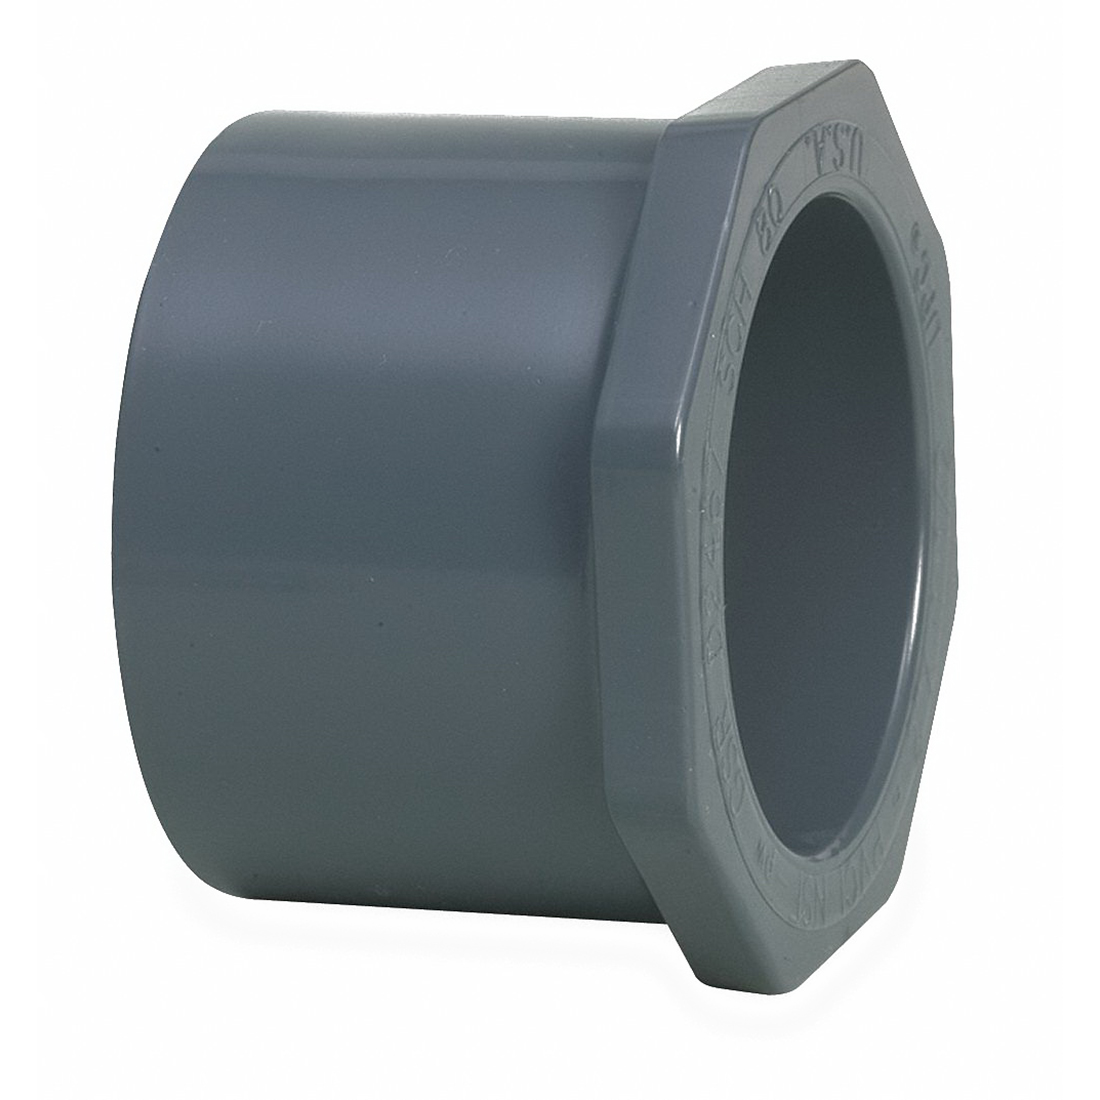 Gray CPVC SCH 80 Flush Style Reducer Bushing, 3/4 in x 1/2 in, Spigot x Socket